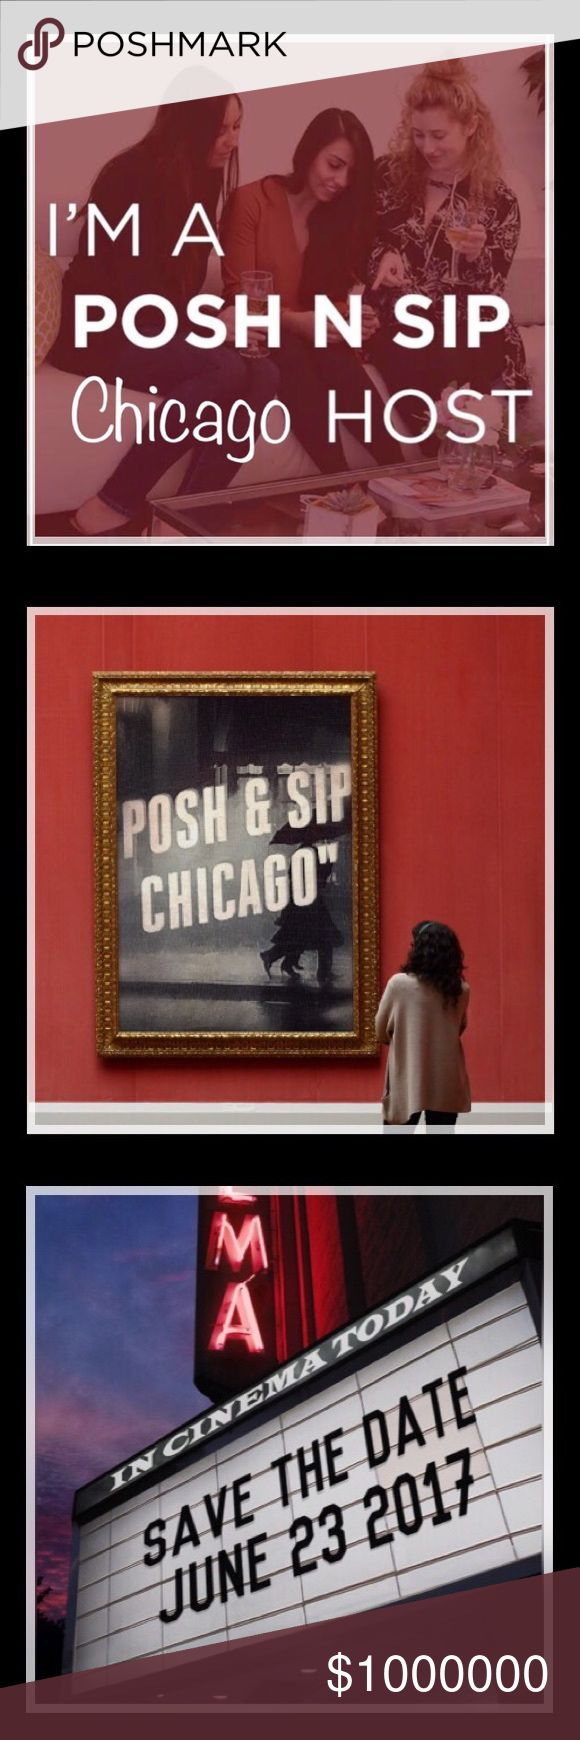 💖Friday June 23, 2017 @ 7pm💖 Yay! 🎈🎉🛍🎀 I'm co-hosting a Posh N Sip in the Greater Chicago area!!! Please save the date! Friday June 23, 2017 at 7pm. Location details to follow. Other